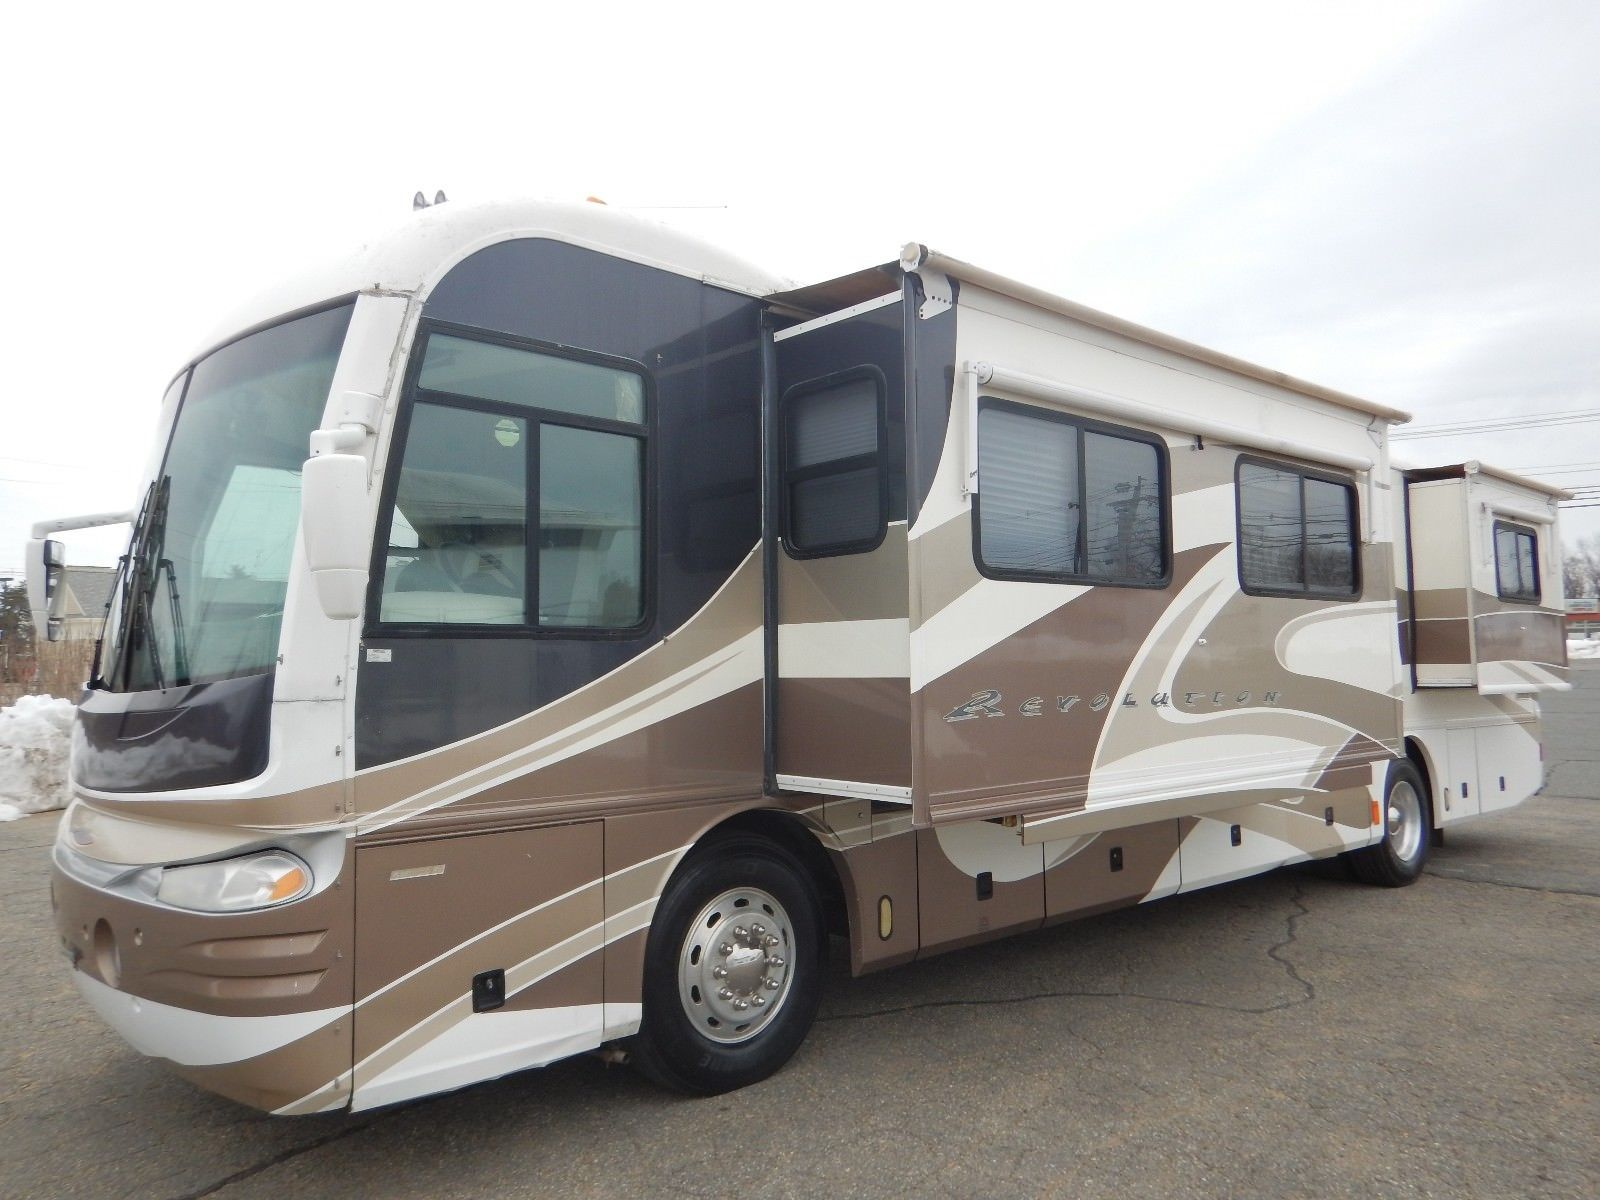 loaded 2002 Fleetwood Revolution 38RB camper RV for sale